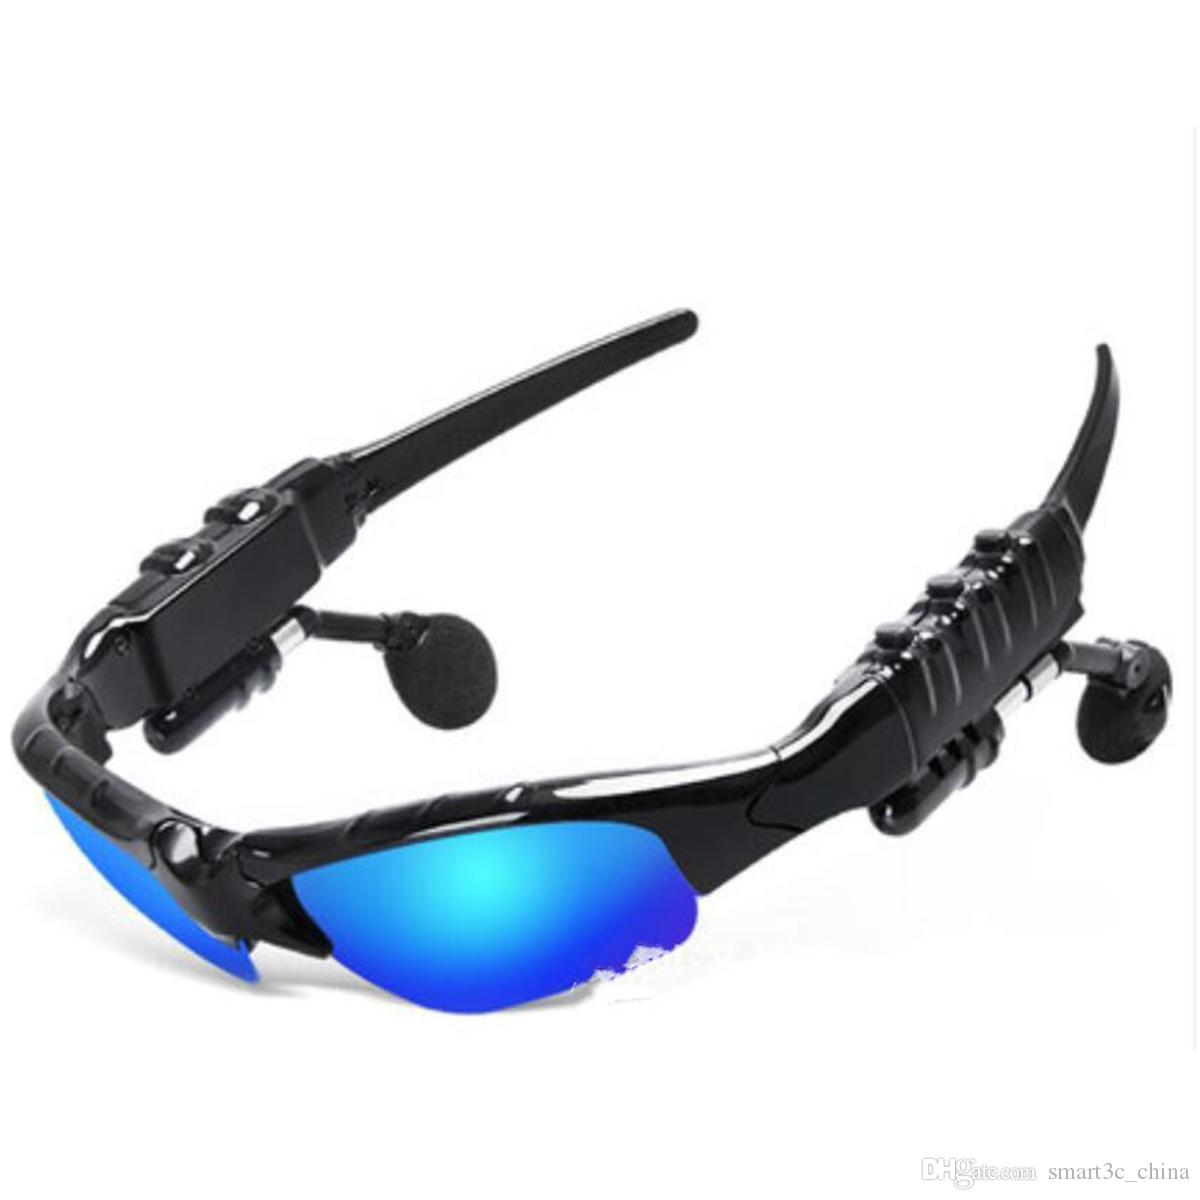 HBS-368 Sunglasses Bluetooth Headset Outdoor Glasses Earbuds Music with Microphone Stereo Wireless Headphone For iPhone Samsung Blue/Rainbow